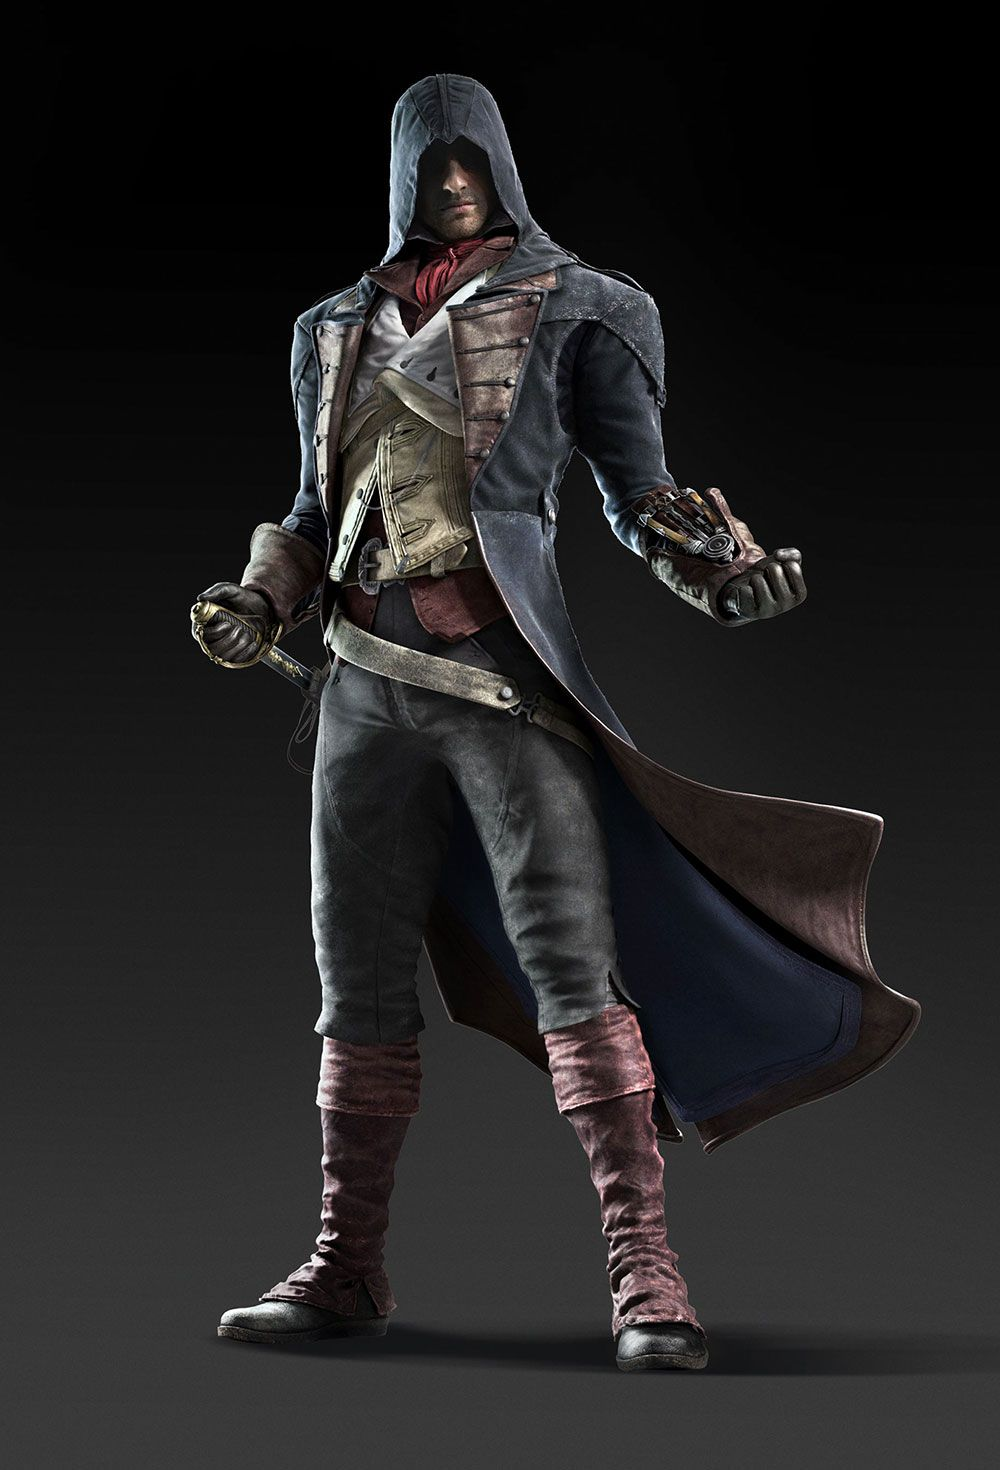 Arno Dorian Ac Unity Assassins Creed Unity Arno Assassins Creed Artwork Assassin S Creed